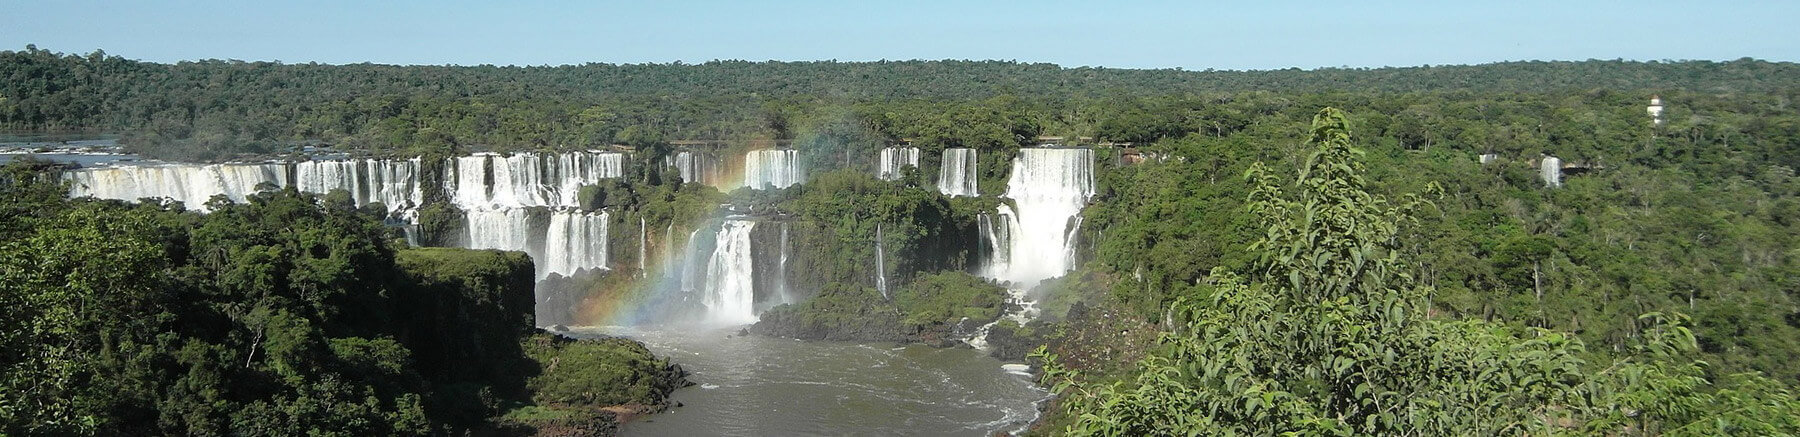 Aerial view of Iguazu Falls on the border of Argentina and Brazil